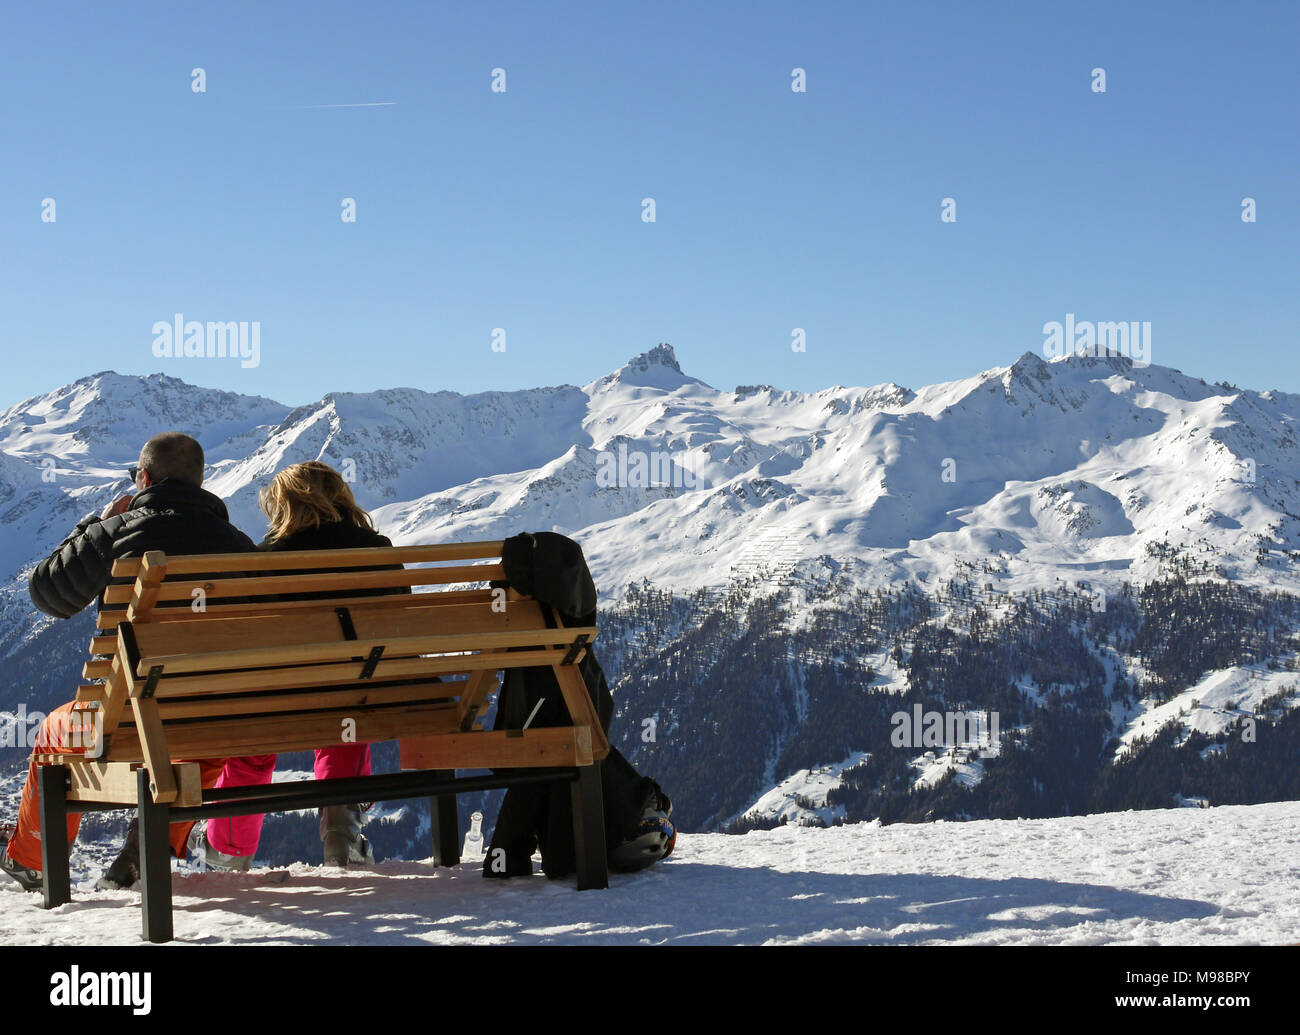 The swiss ski and snow-sport linked resort of St Luc and Chandolin in the Valais region of Switzerland.  Skiers relaxing and looking towards Grimentz Stock Photo